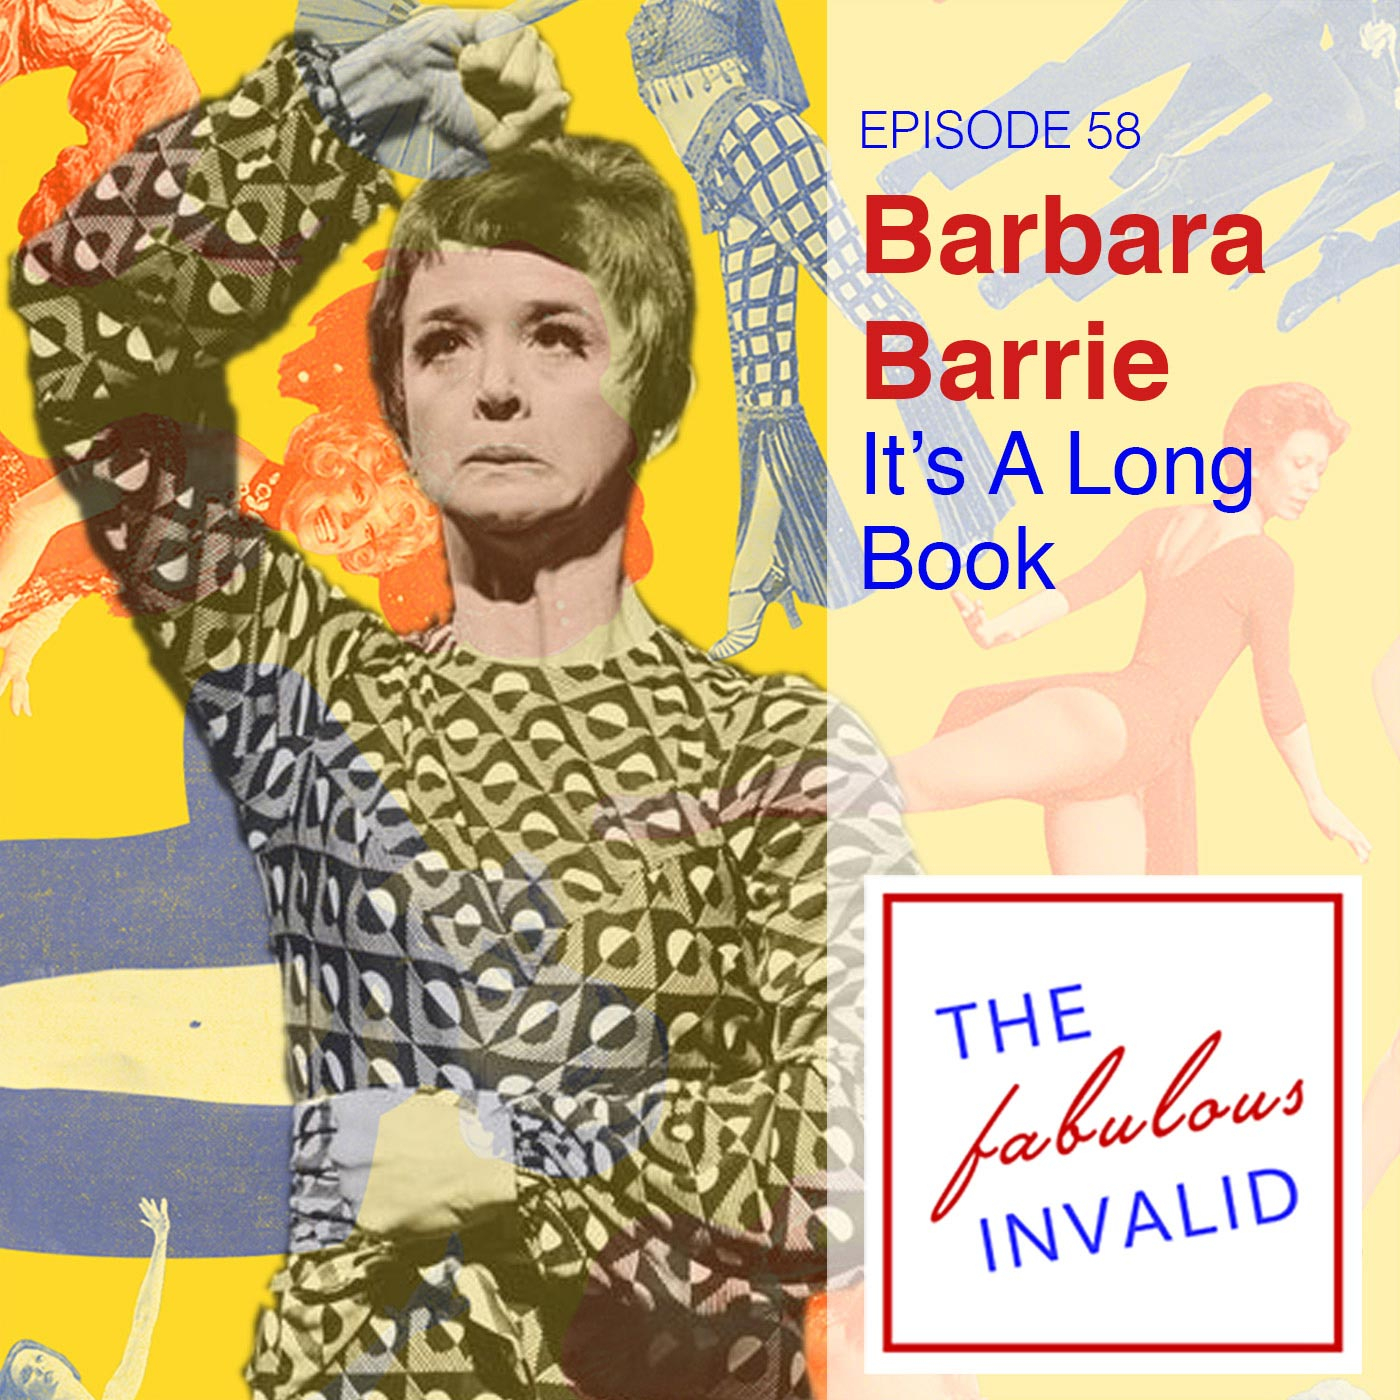 The Fabulous Invalid Episode 58 Barbara Barrie